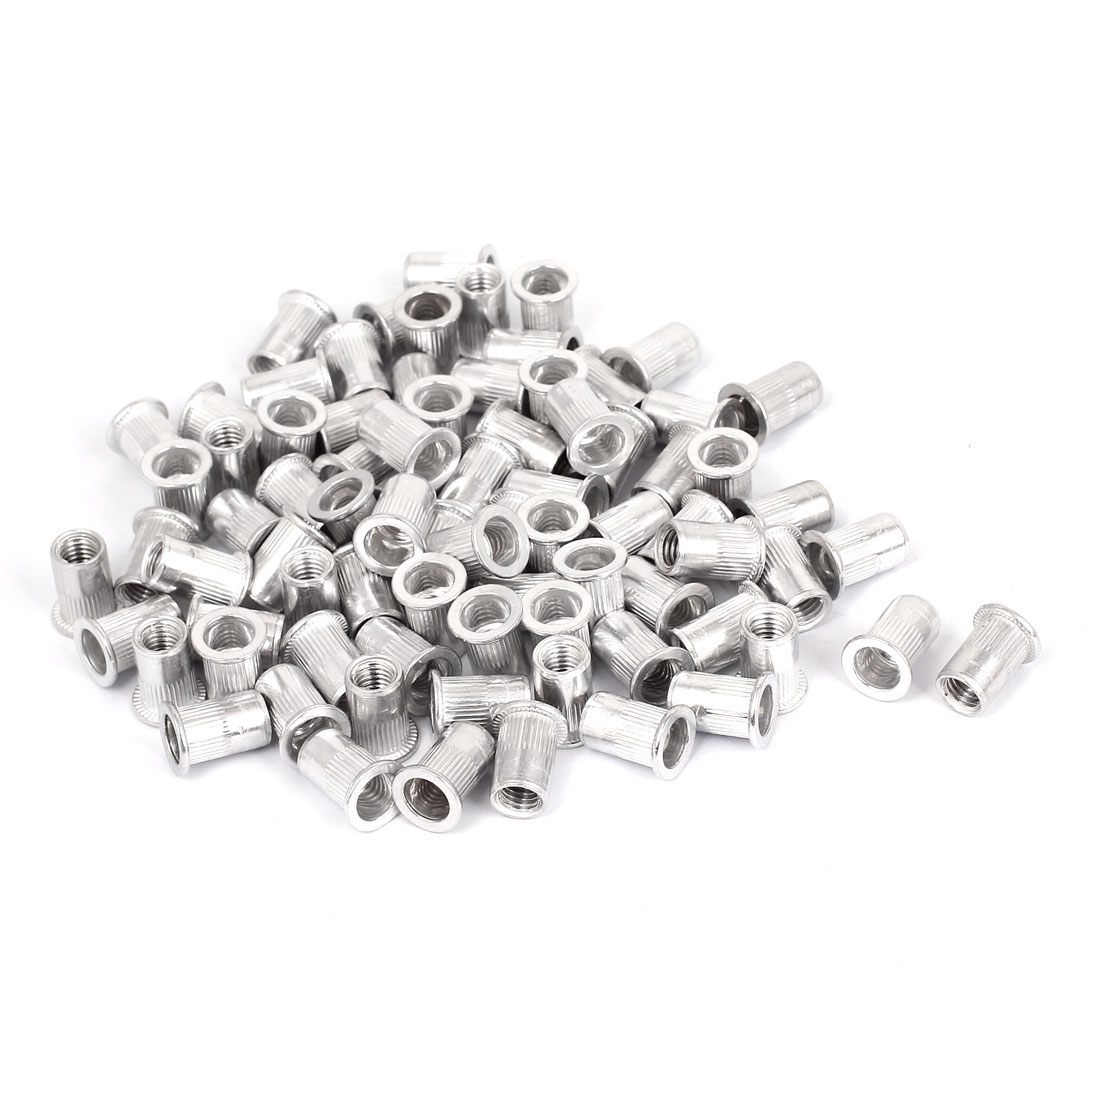 100 Pcs M8x18mm Aluminum Knurled Body Flat Head Blind Rivet Nuts Insert Nutserts